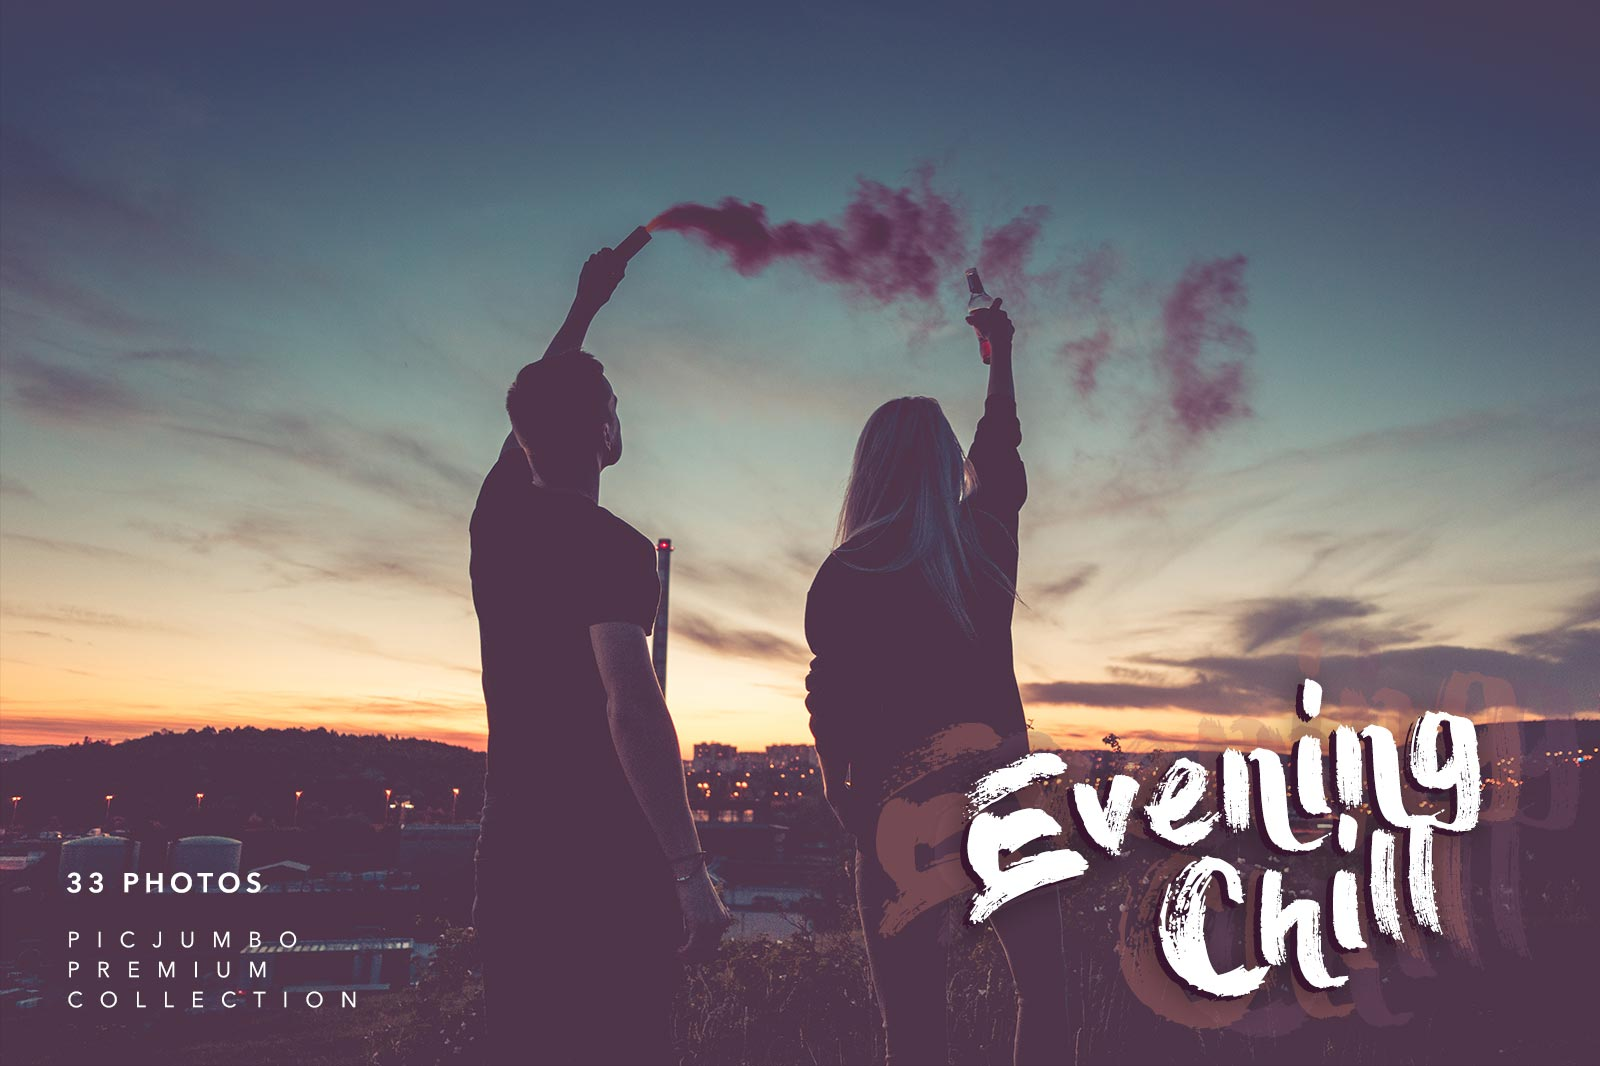 Evening Chill — get it now in picjumbo PREMIUM!